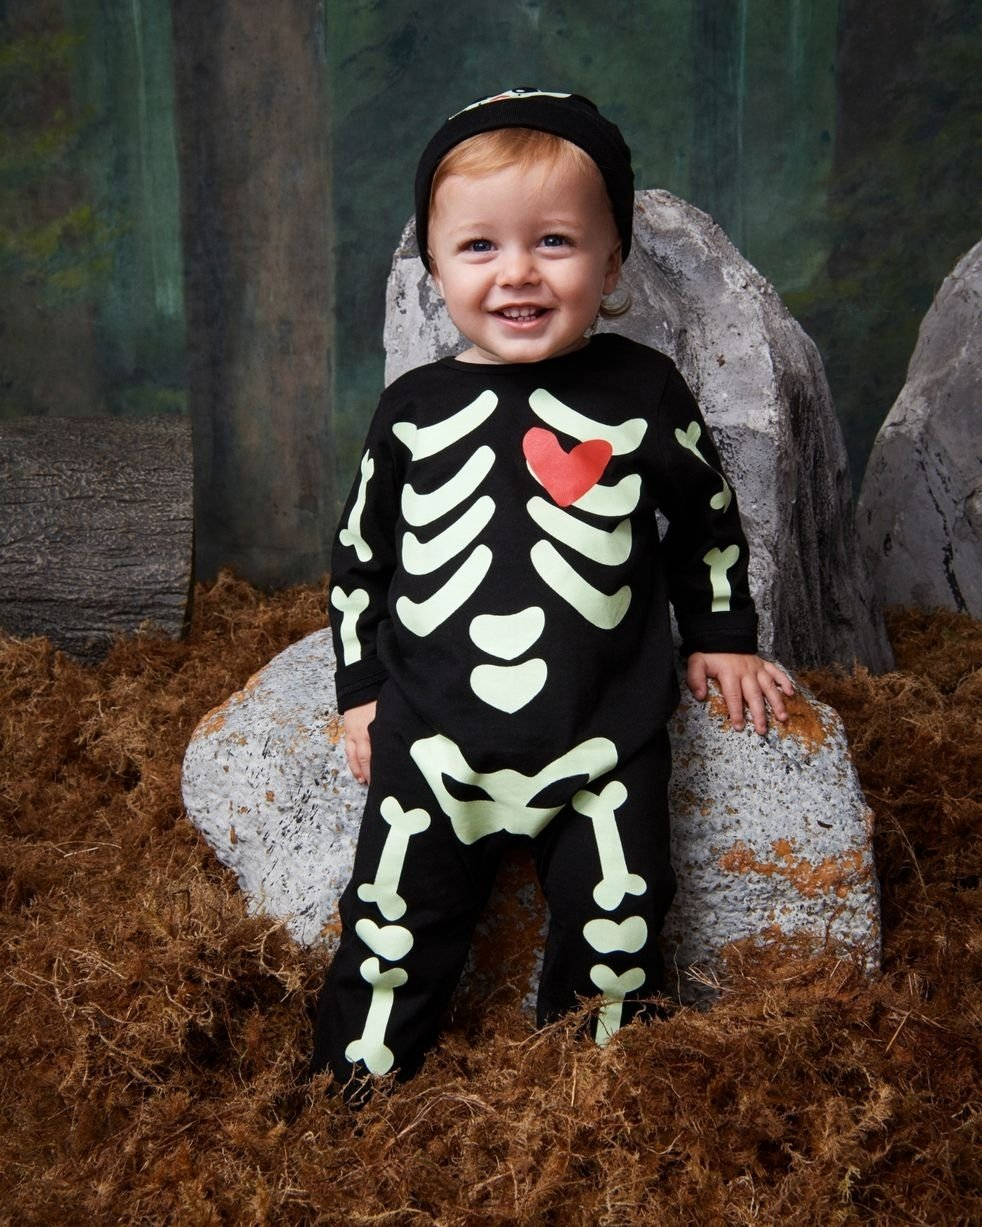 10 famous halloween costume ideas for toddler boys last minute halloween costume ideas for kids babies